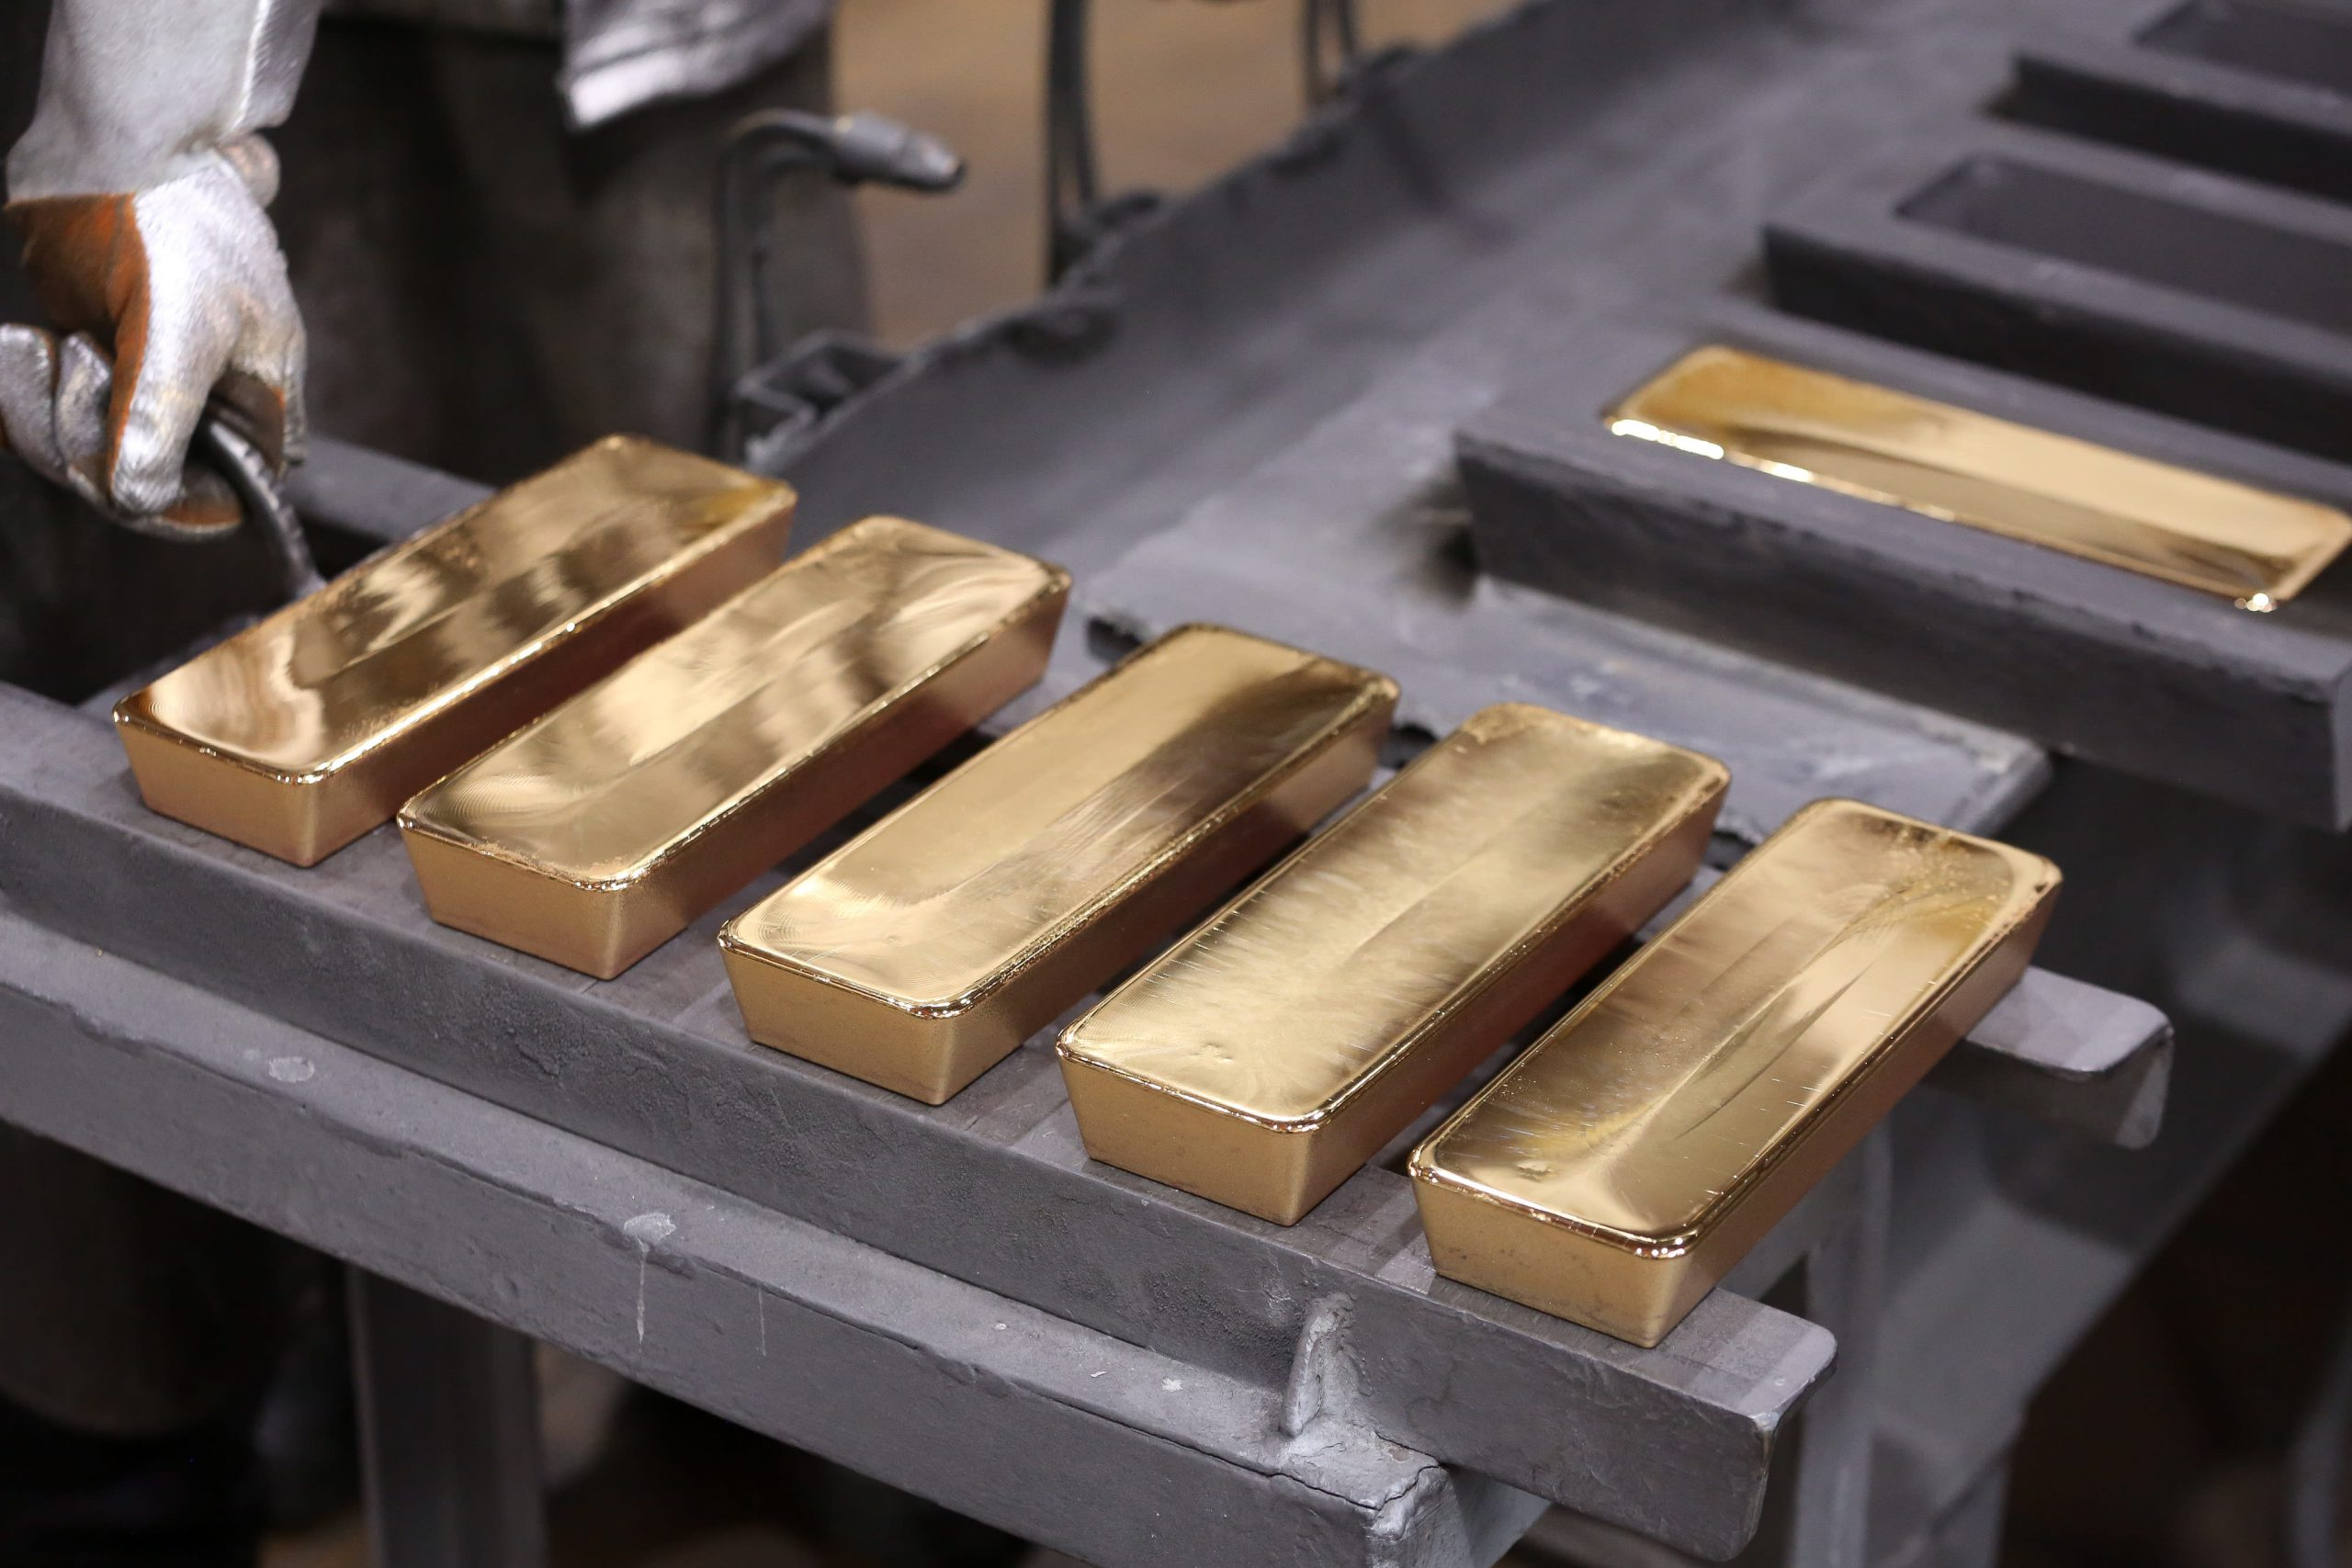 Citi sees gold topping $2,000 in next 12 to 24 months